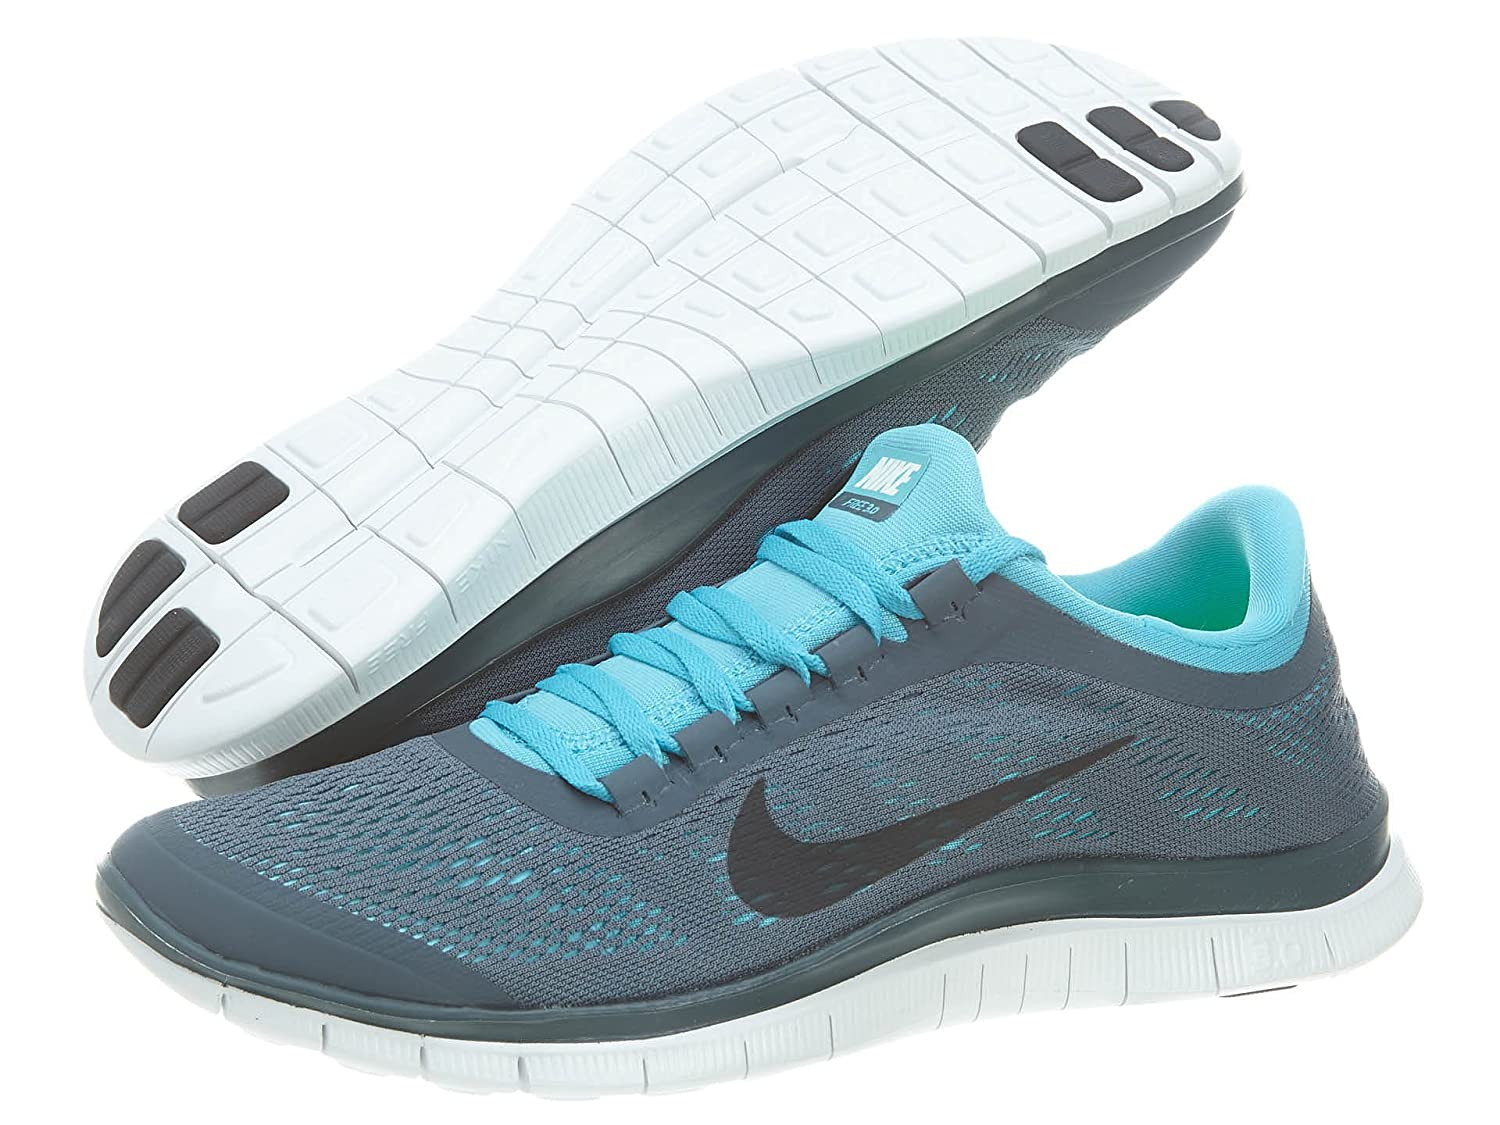 NIKE Free 3.0 V5 – Running Sneakers Shoes – 580393